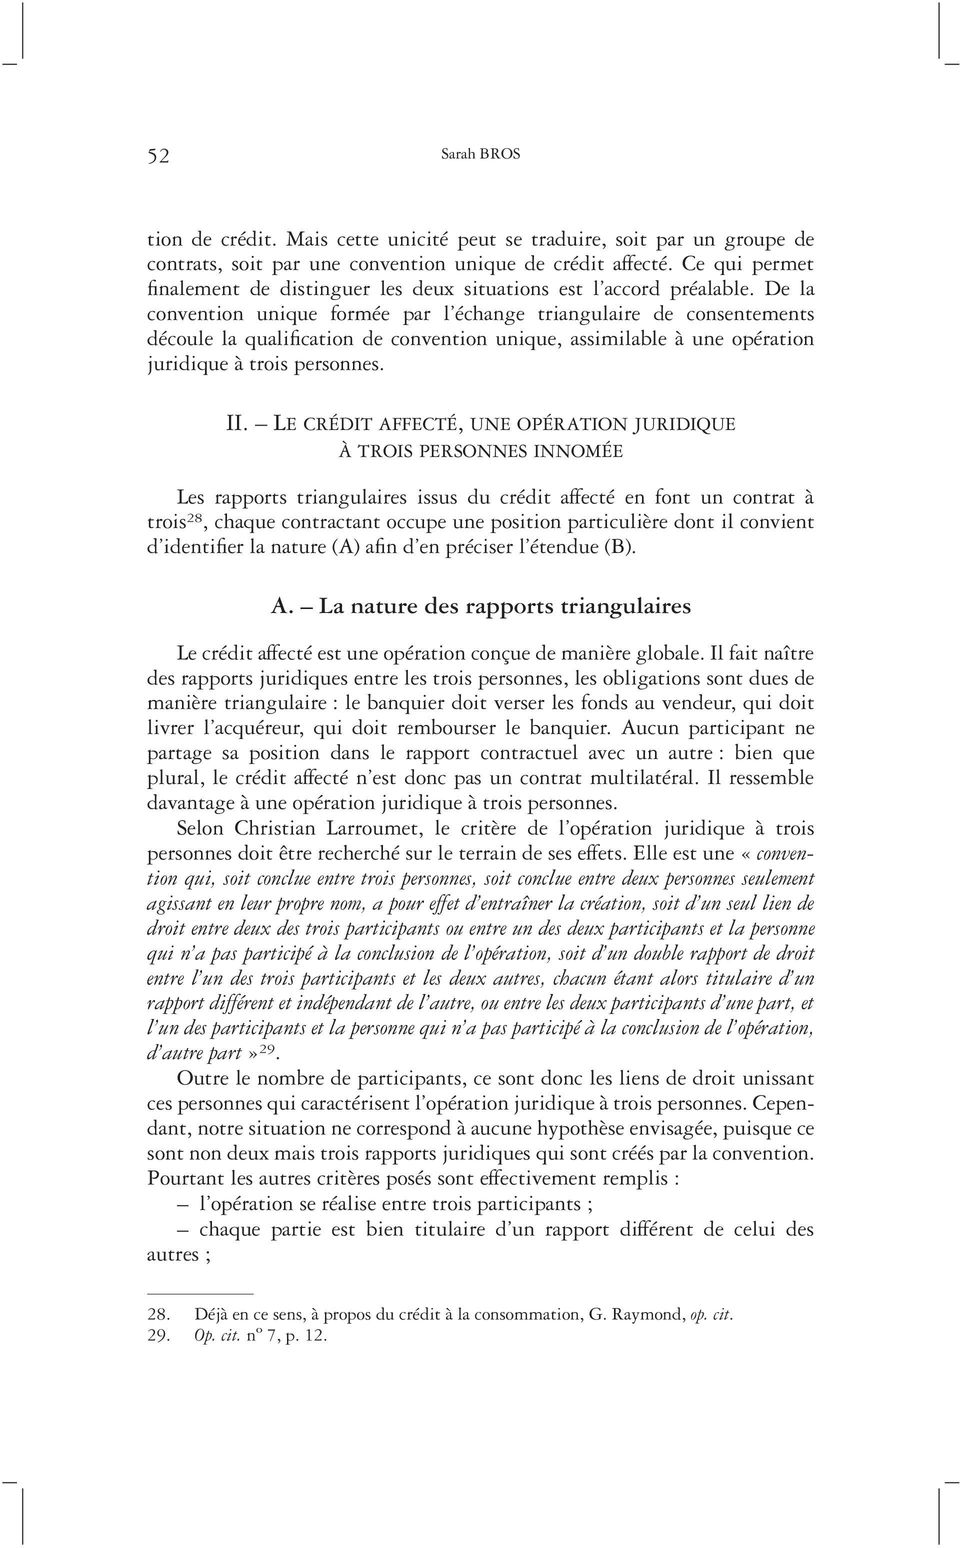 De la convention unique formée par l échange triangulaire de consentements découle la qualification de convention unique, assimilable à une opération juridique à trois personnes. II.